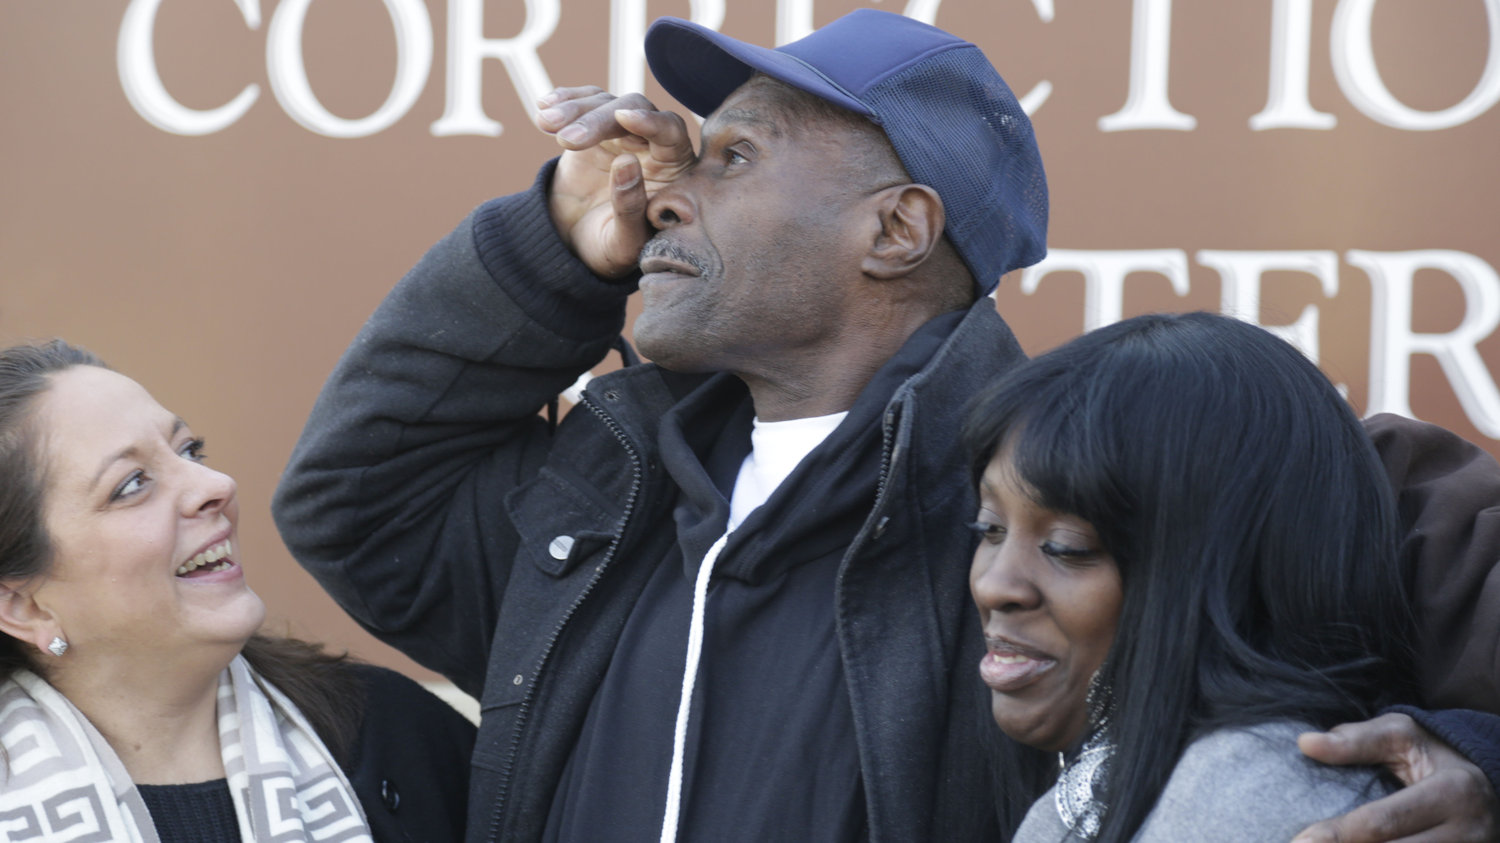 Stanley Wrice pauses in December 2013 as he speaks to the media with his lawyer, Heidi Linn Lambros (left), and his daughter, Gail Lewis, while leaving Pontiac Correctional Center in Pontiac, Ill. Wrice was released after serving more than 30 years. He claimed for decades that Chicago police detectives under the command of then-Lt. Jon Burge beat and coerced him into confessing to rape.   M. Spencer Green/AP